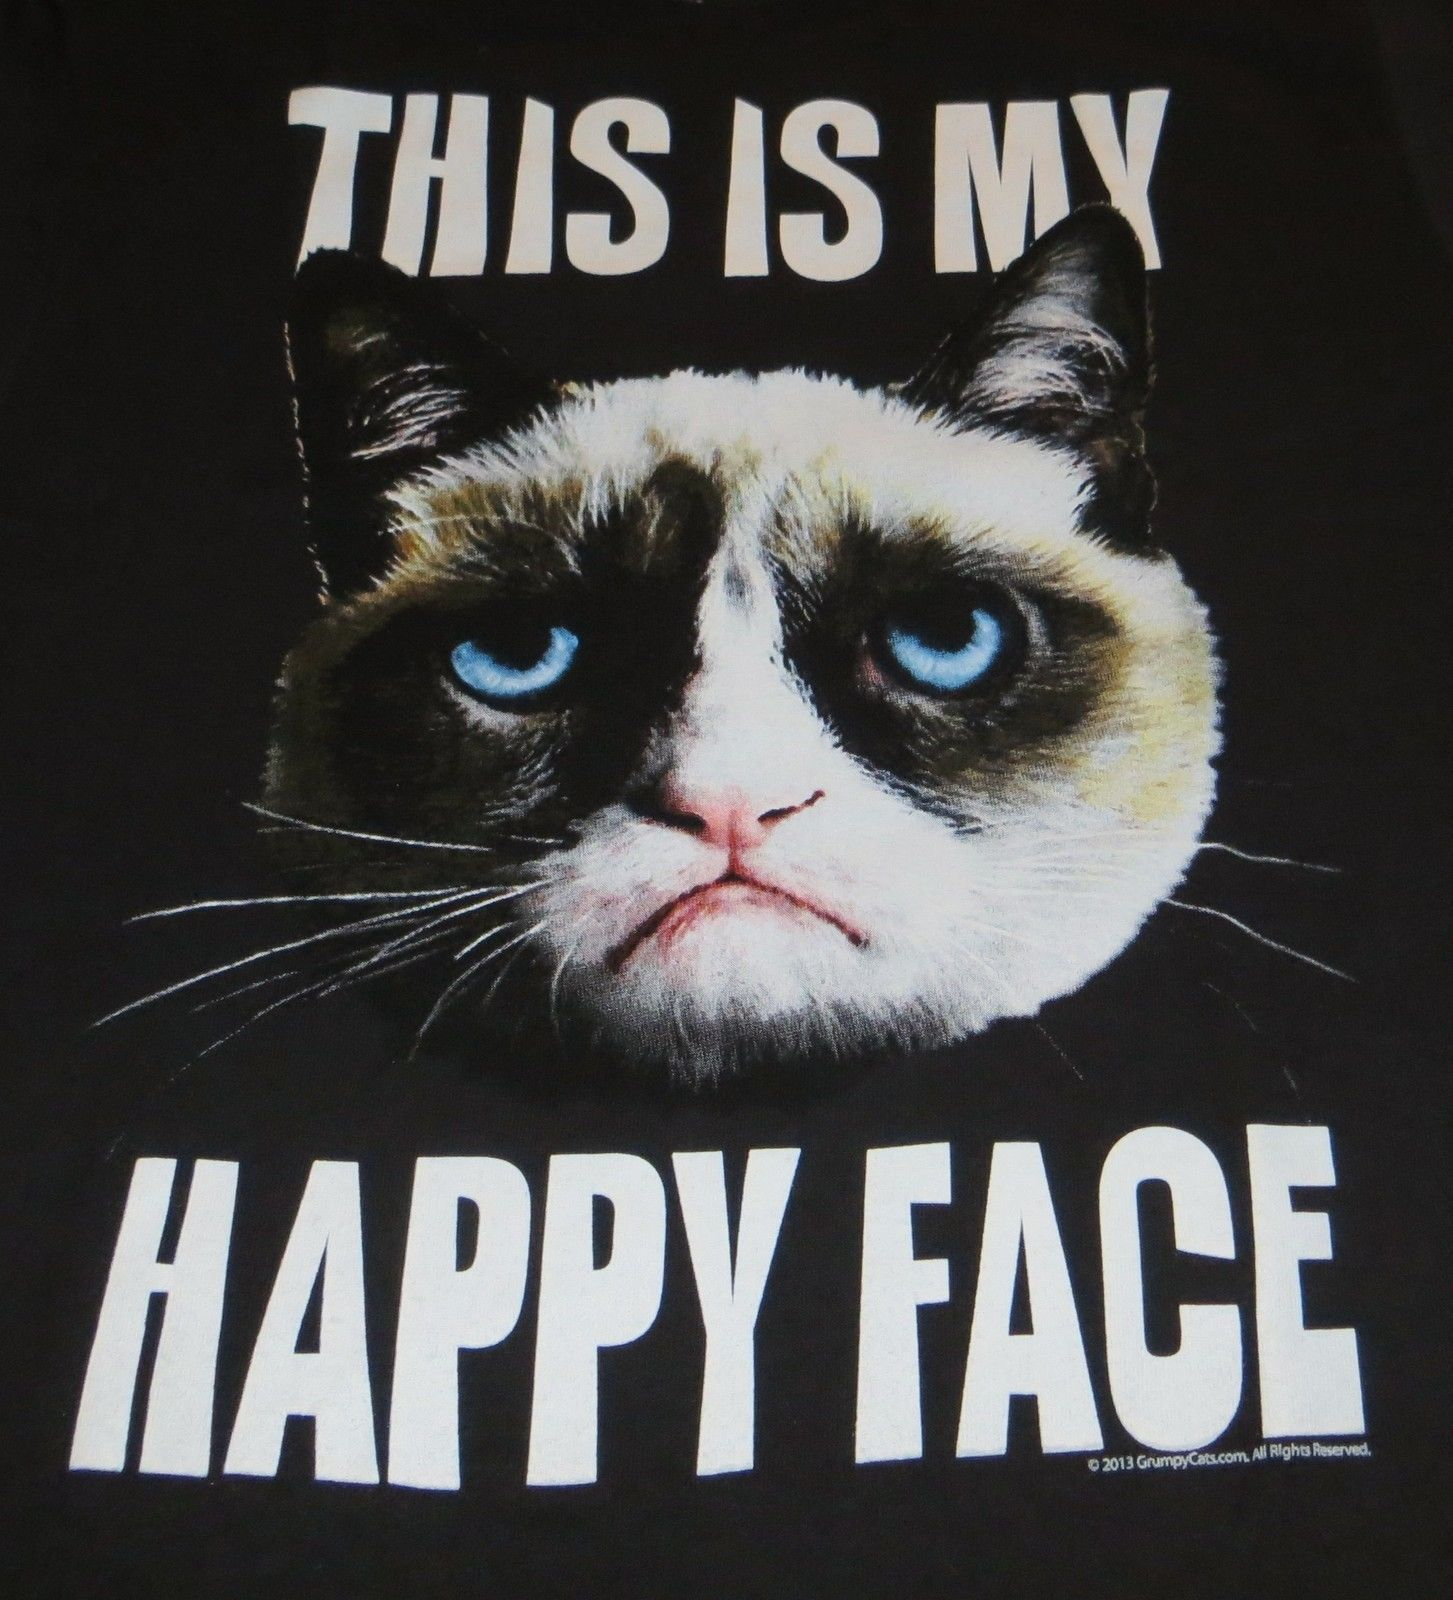 GRUMPY CAT THIS IS MY HAPPY FACE L LARGE T-SHIRT NEW ...